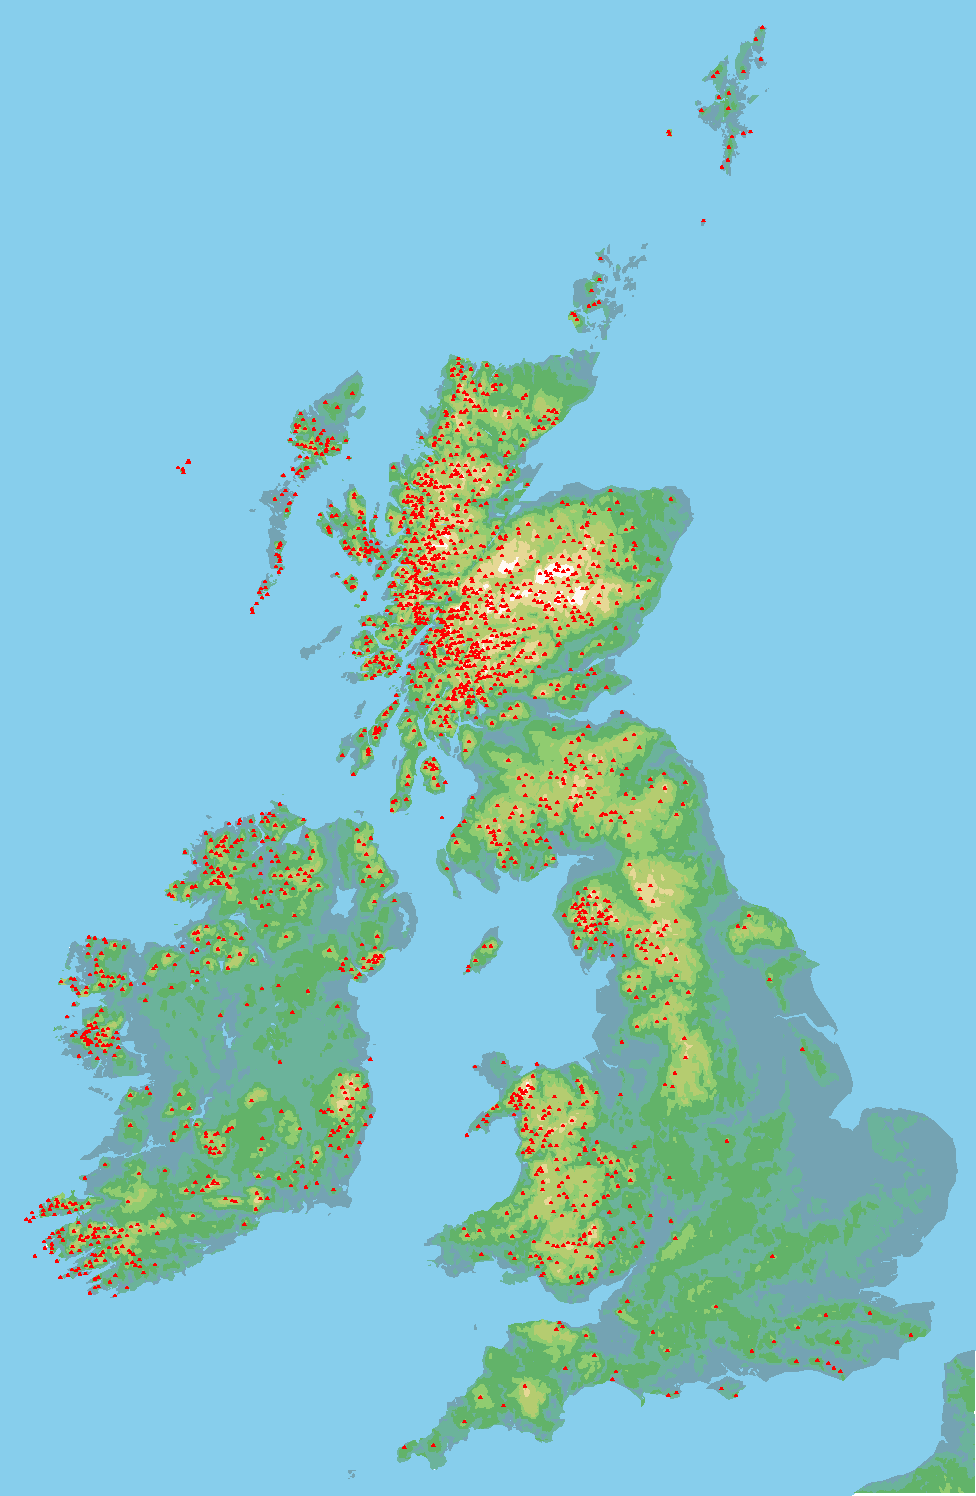 FileMap Of Marilynspng Wikimedia Commons - Terrain map uk